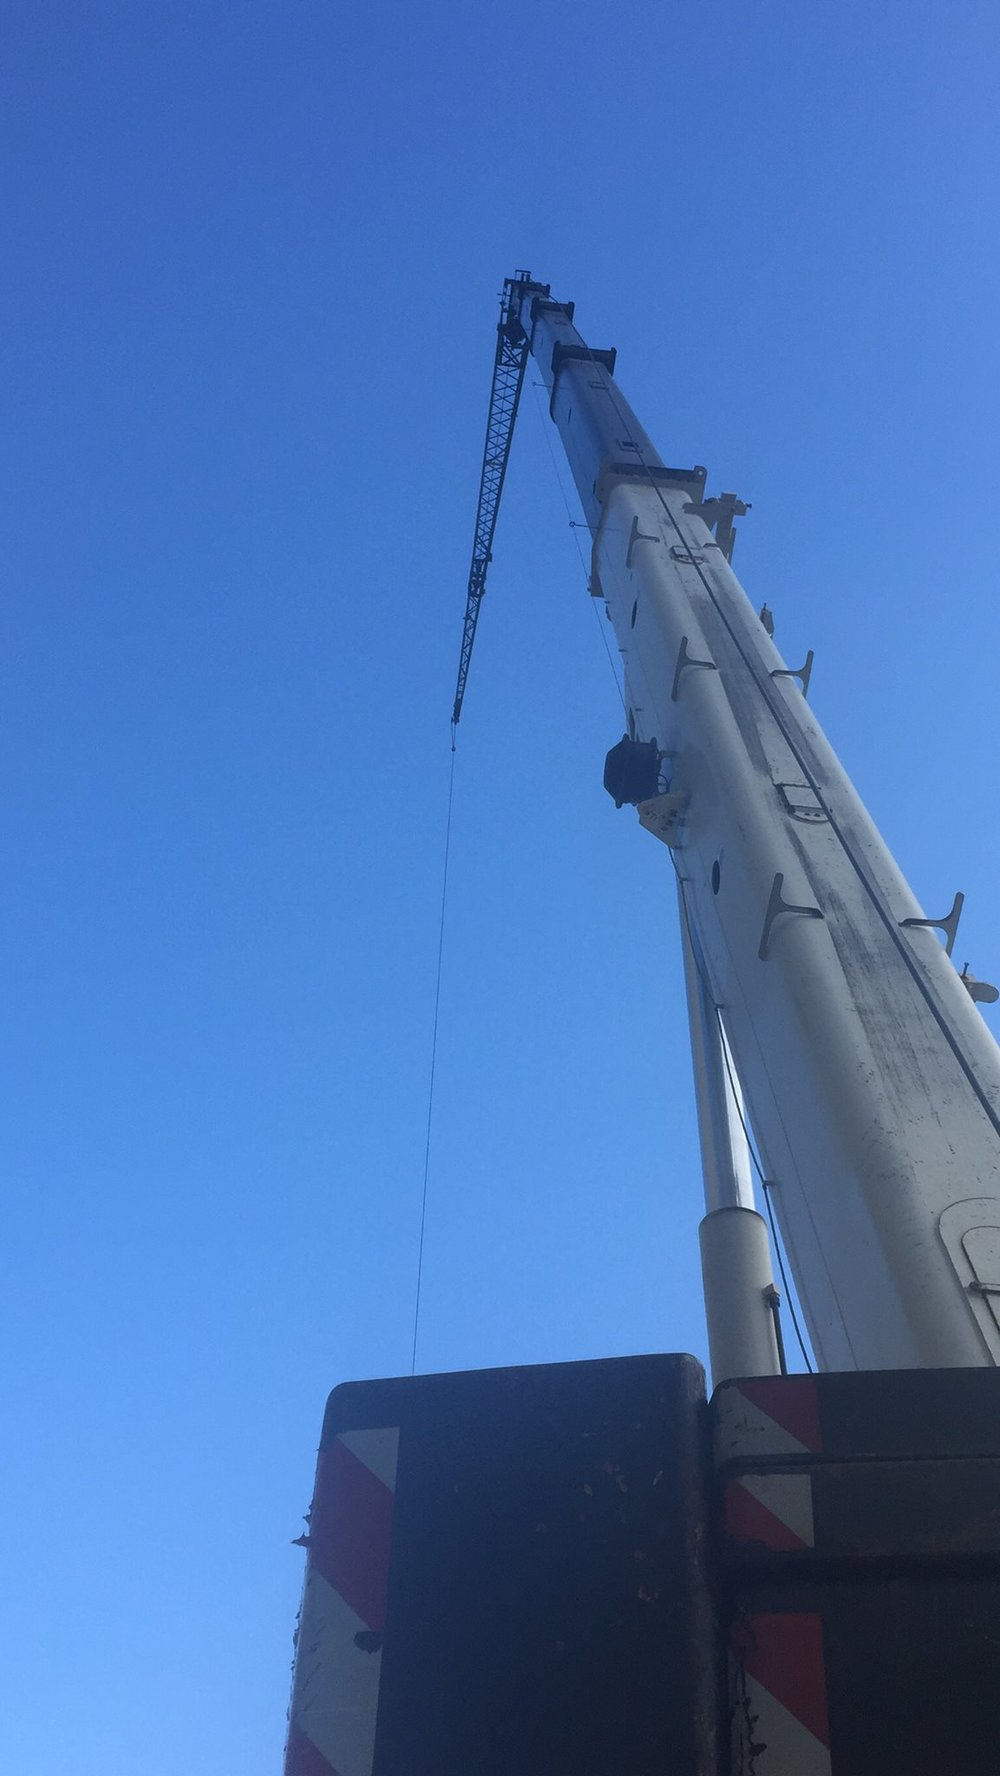 millwright work done by a mobile crane